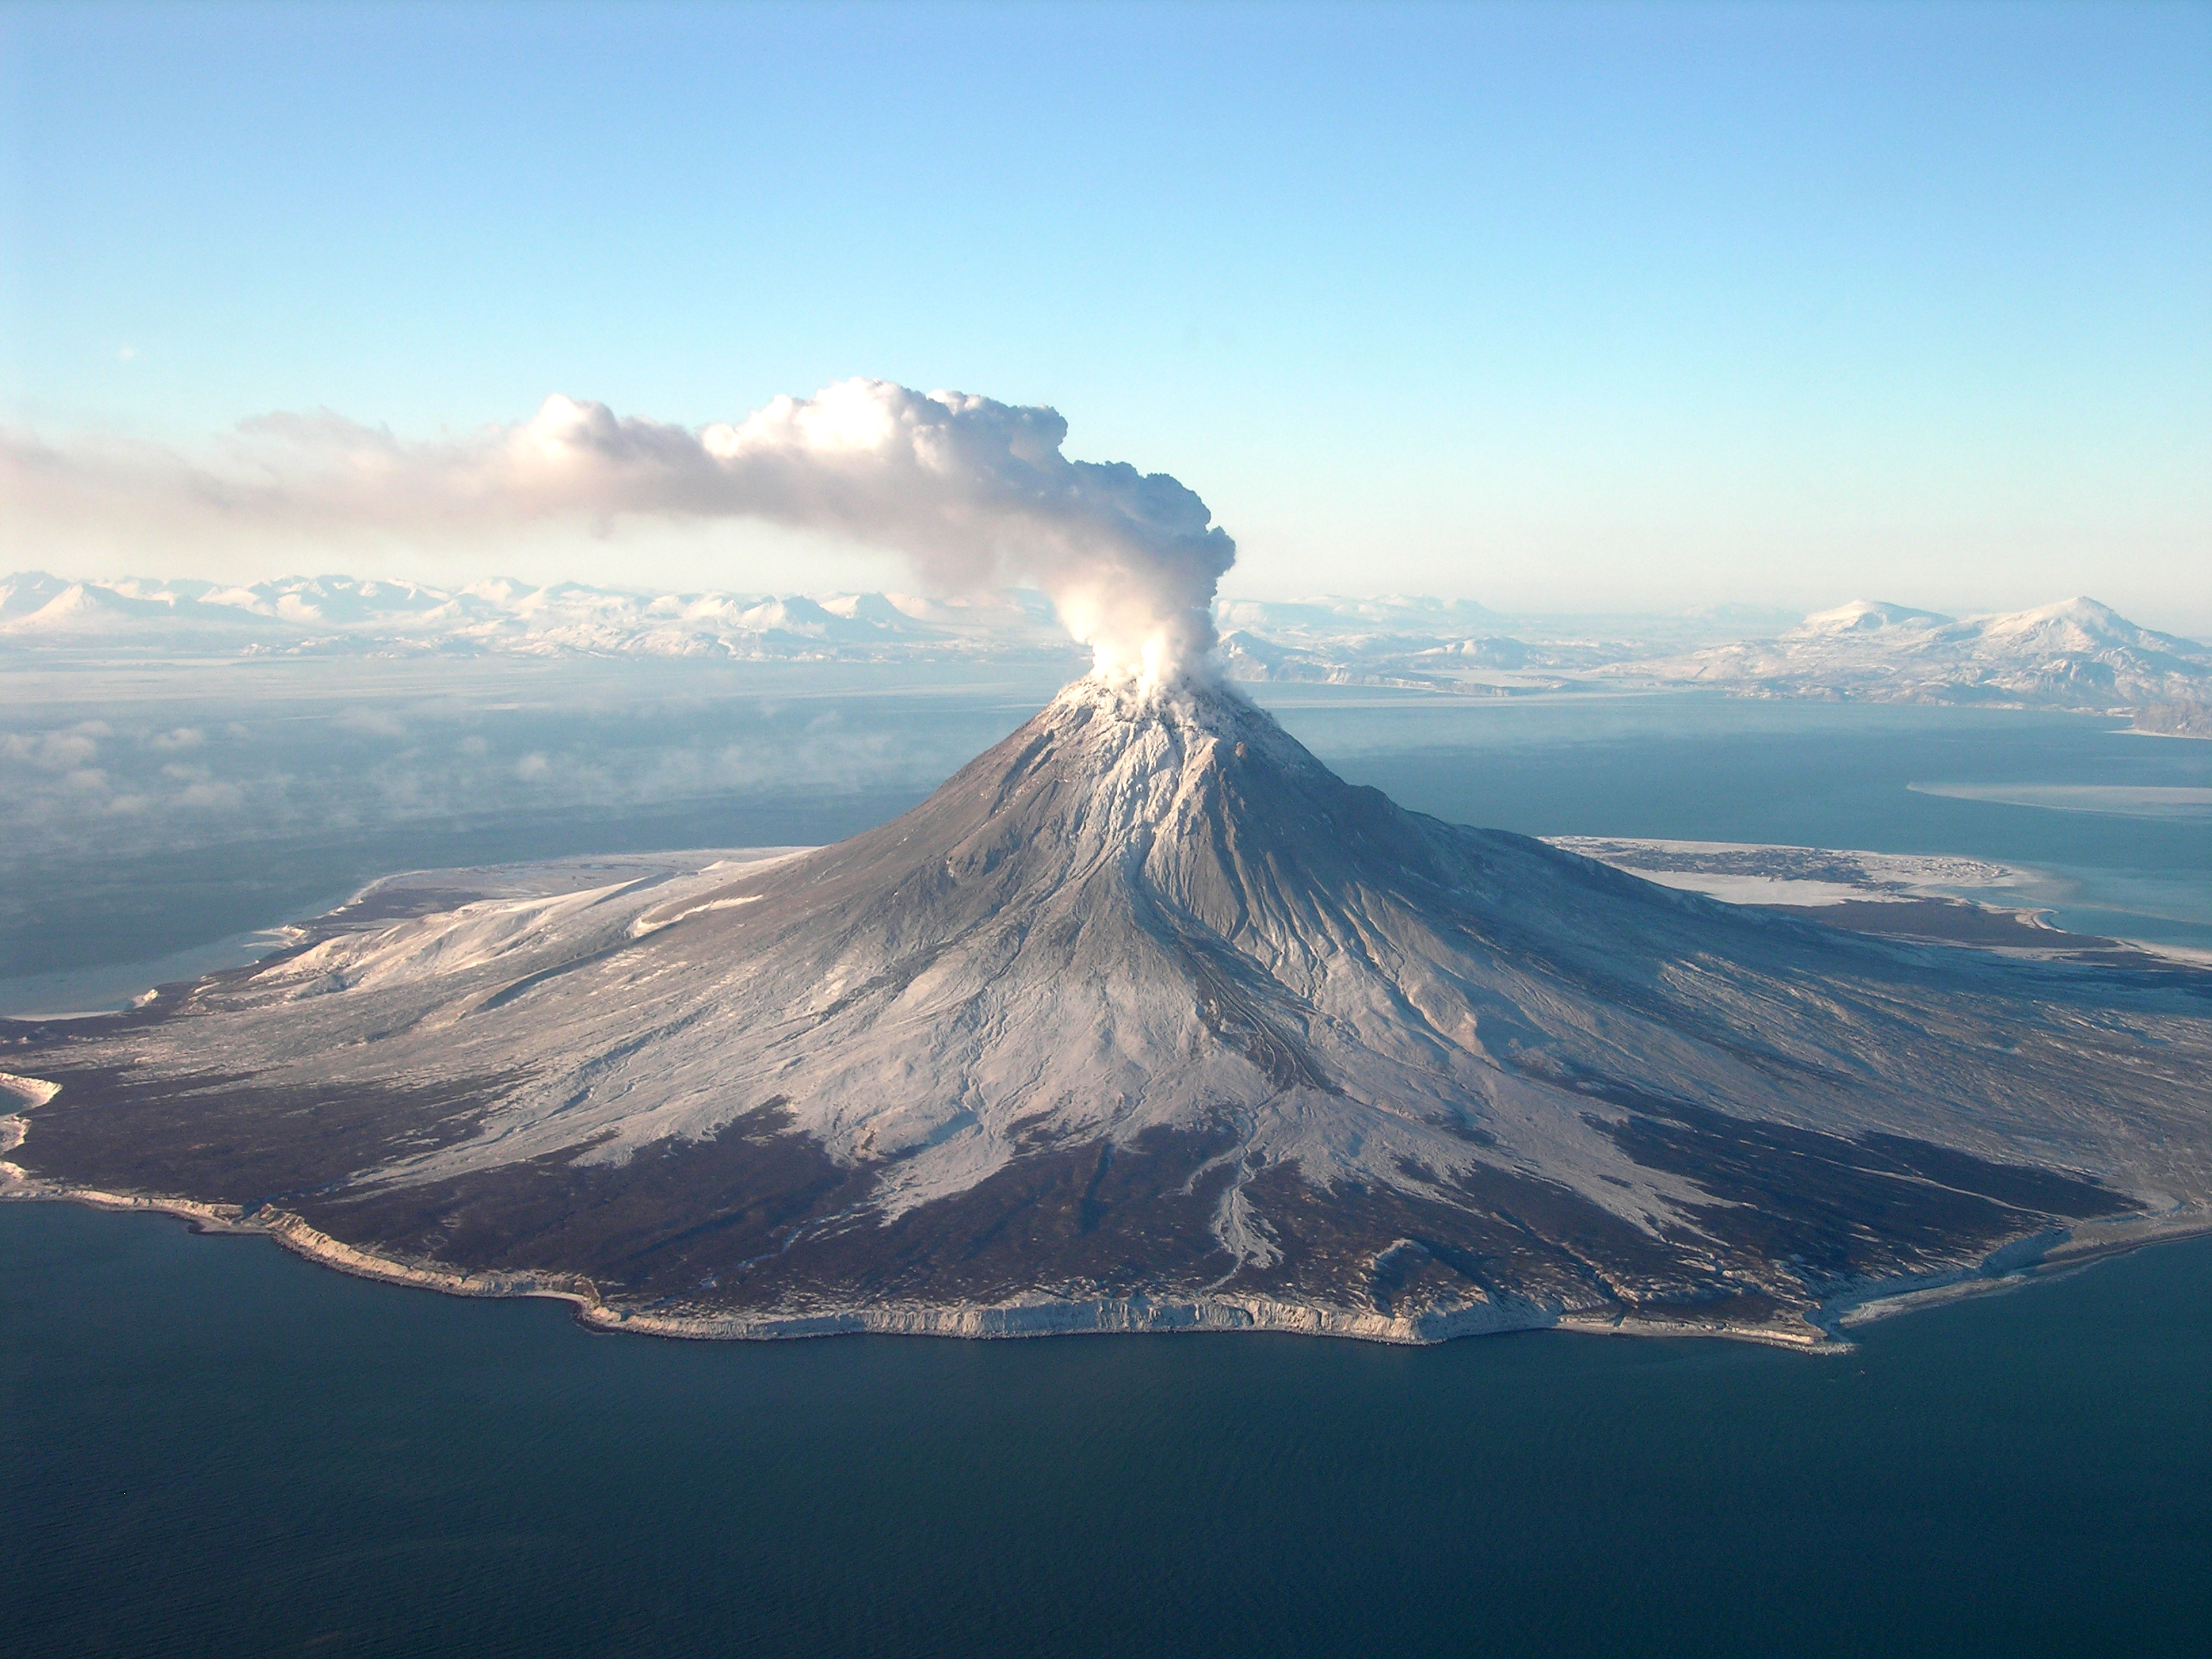 Augustine Volcano with smoke emitting from the top